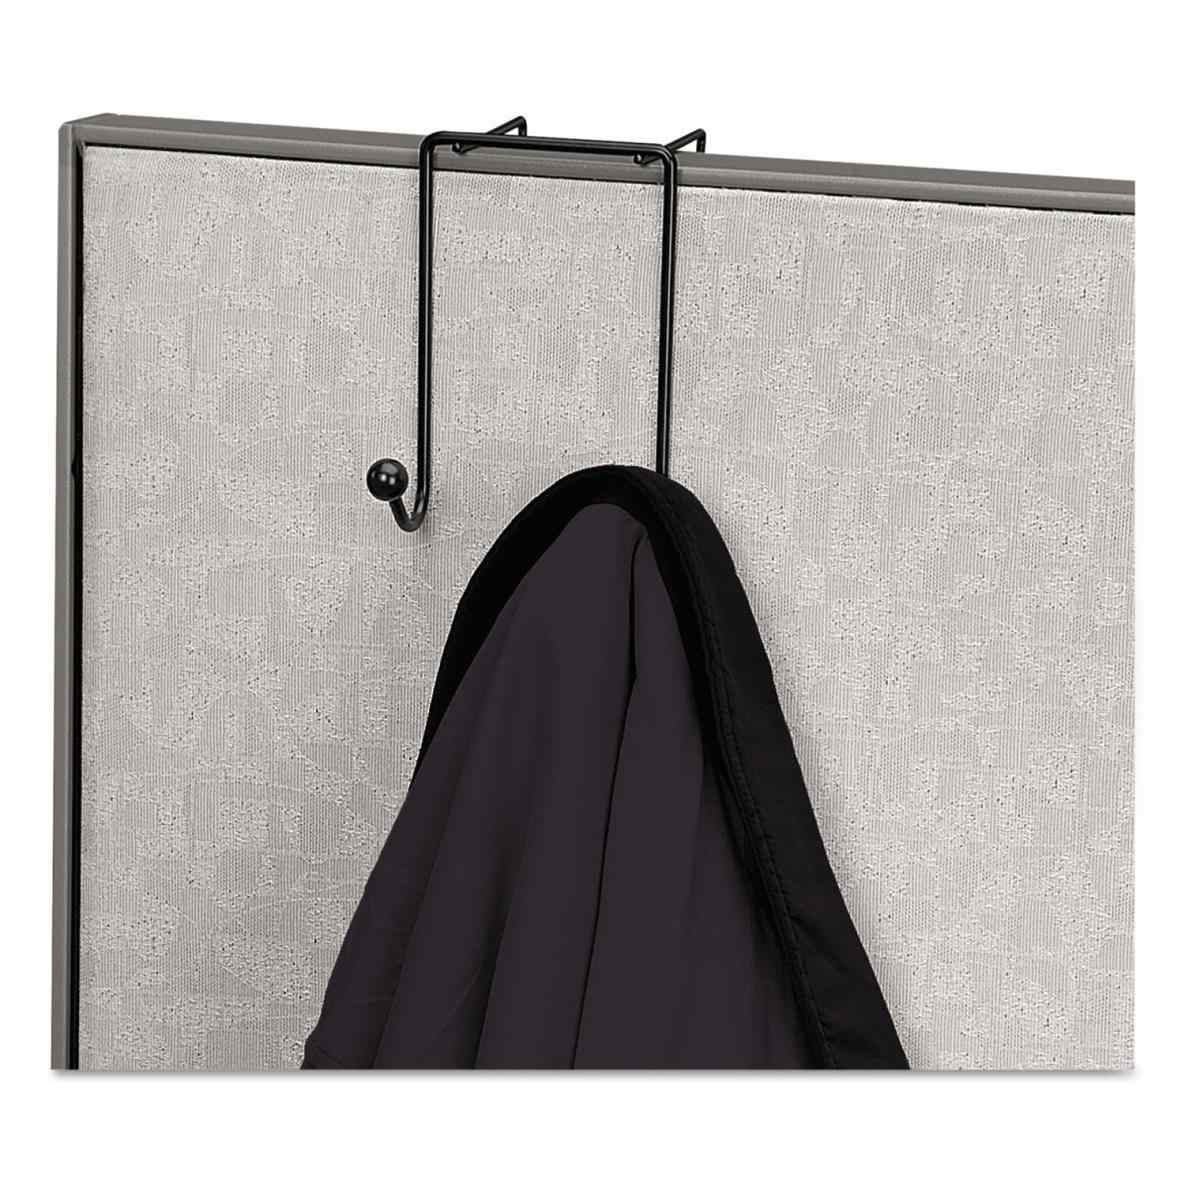 Over The Cubicle Coat Hook | Cubicle Coat Hook | Cubicle Hanger